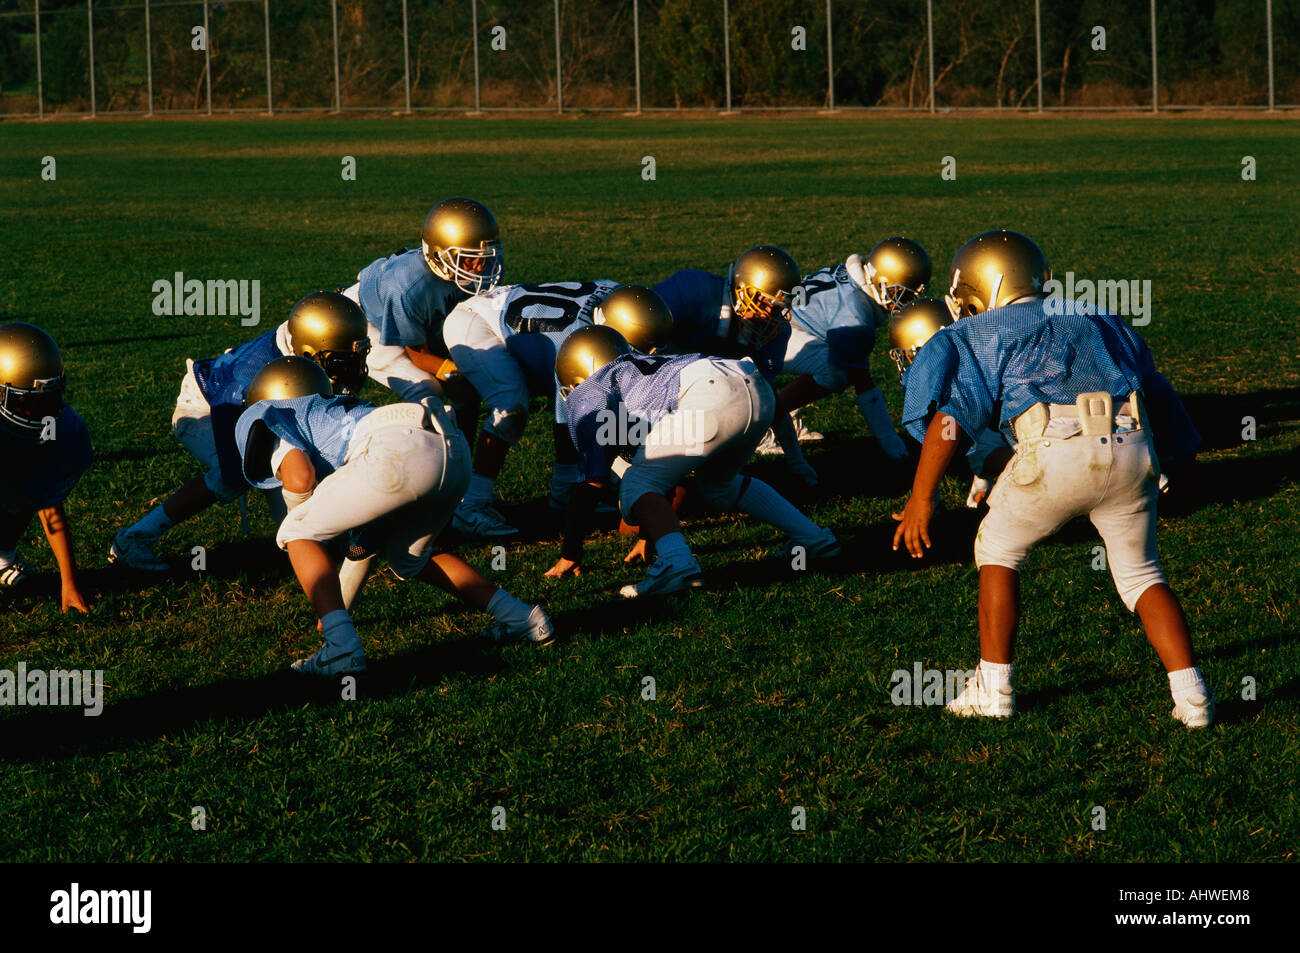 These are the players in a junior league football practice in Brentwood California - Stock Image